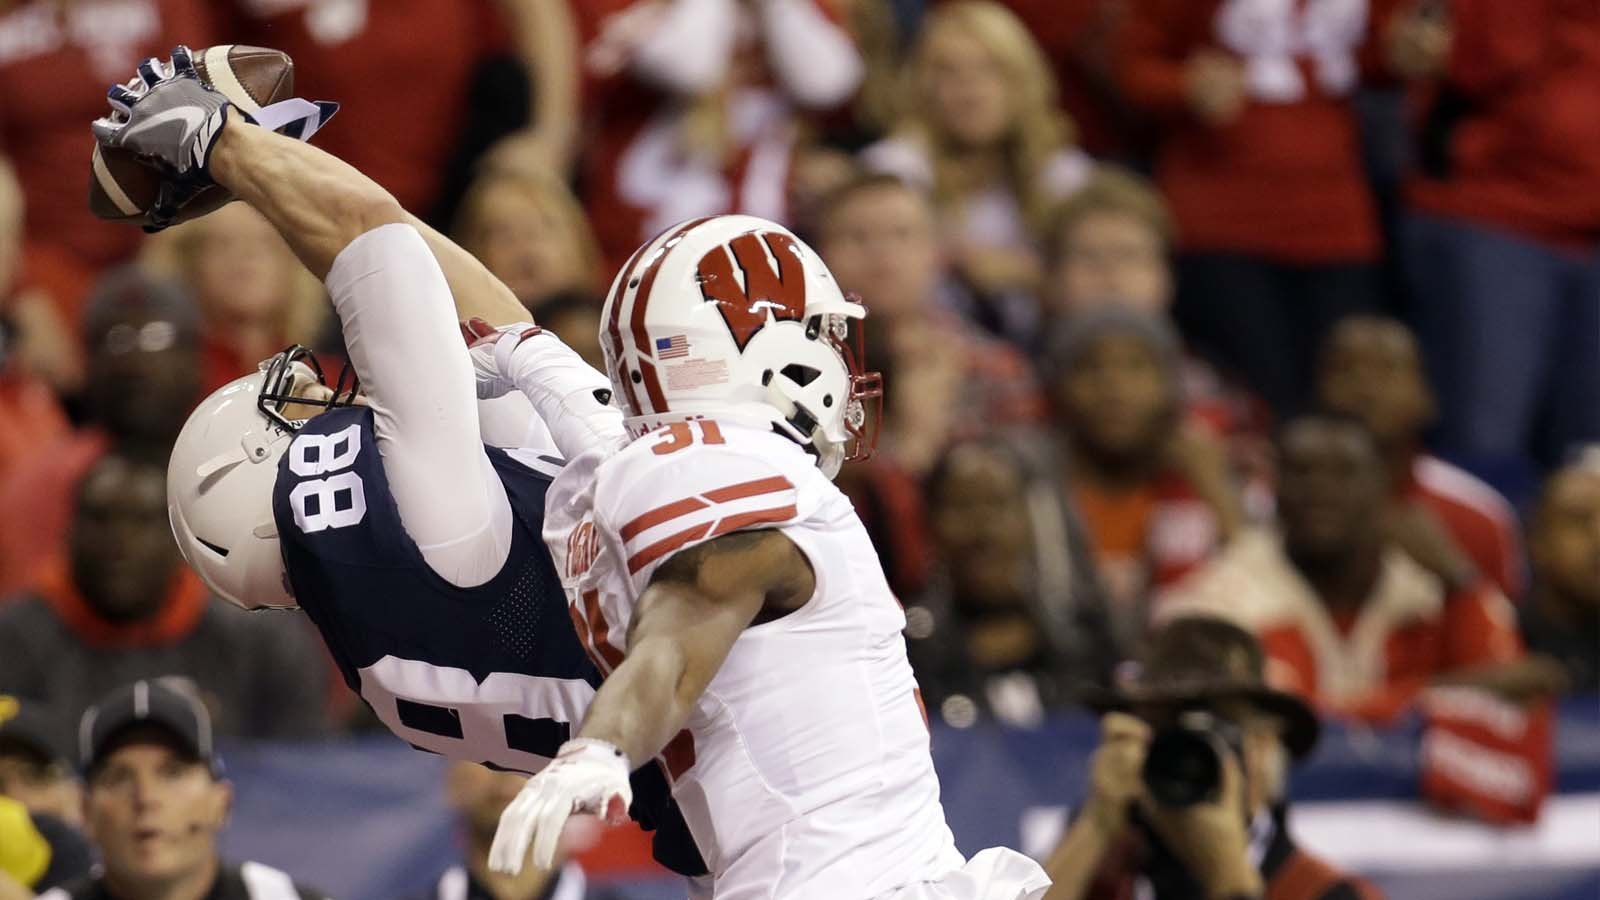 Upon Further Review: Wisconsin Badgers vs. Penn State